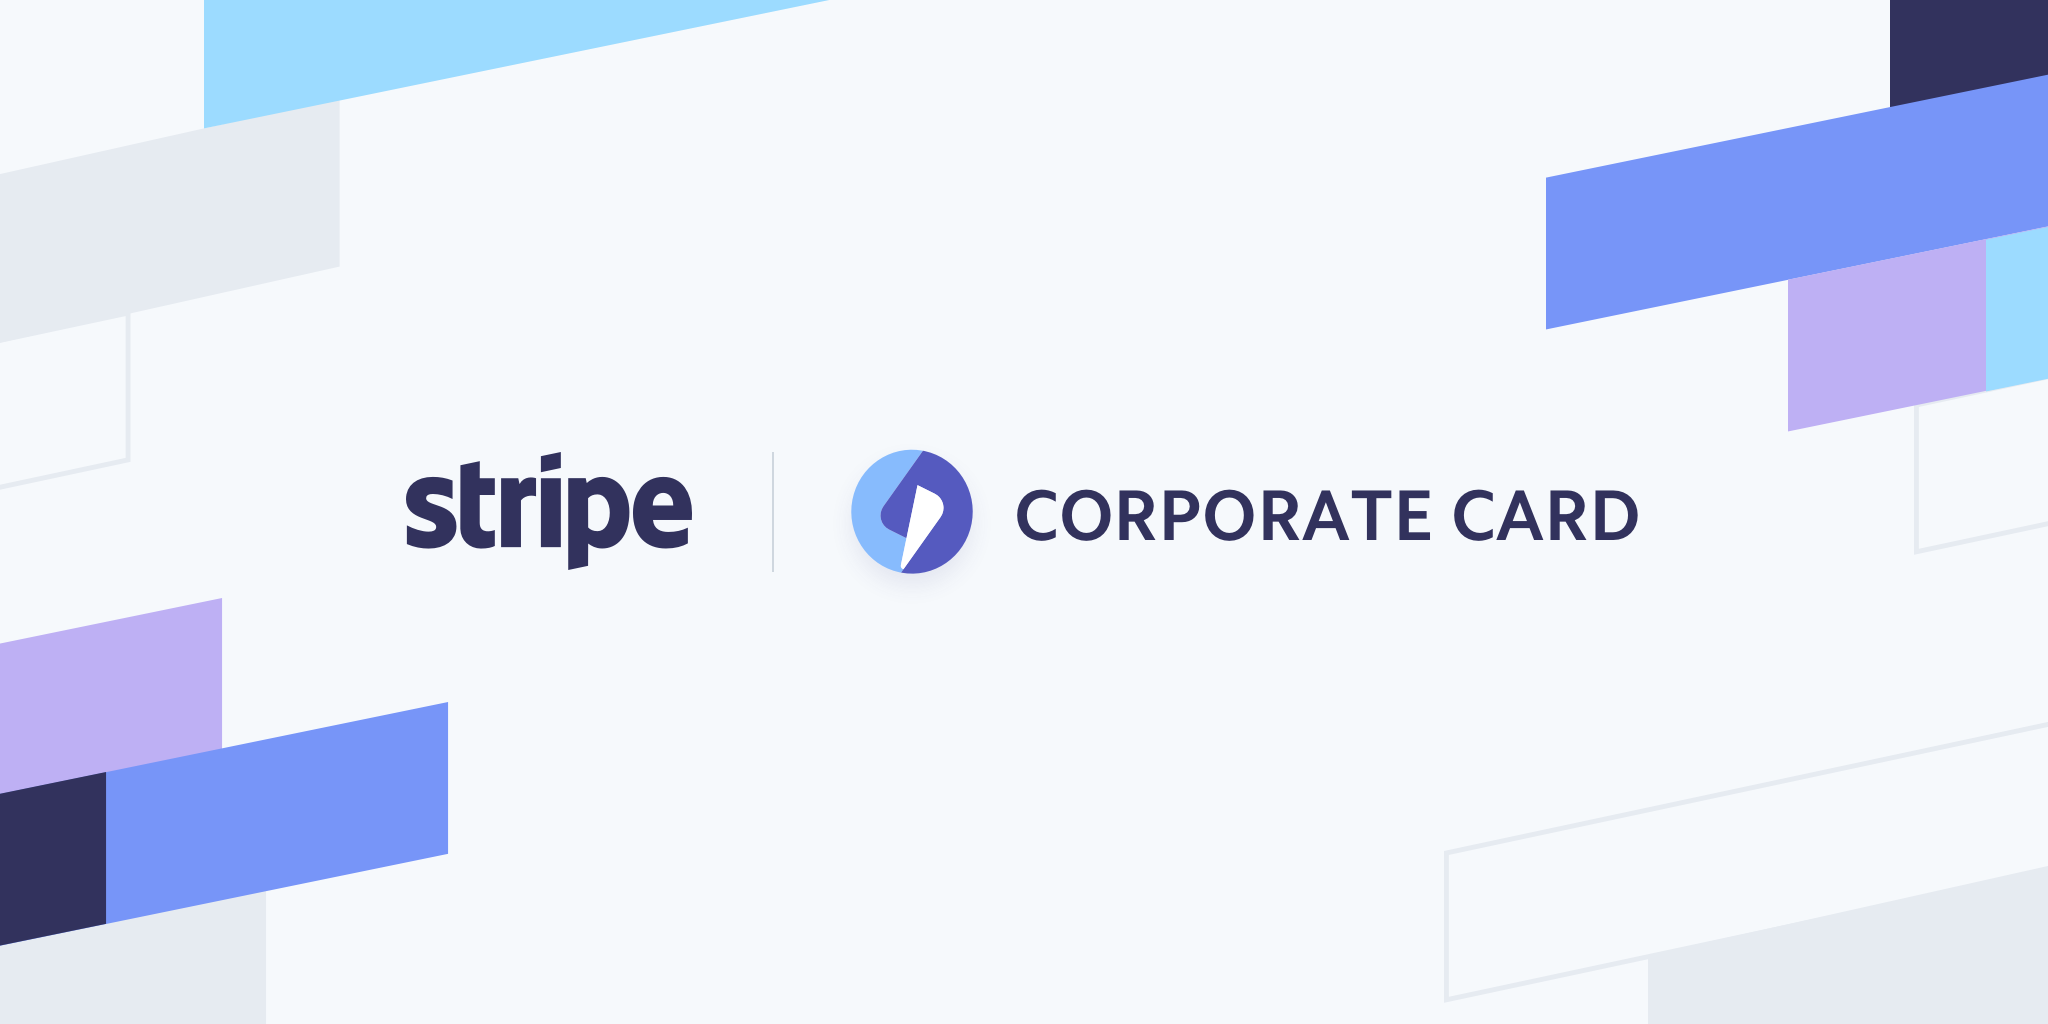 Stripe Corporate Card: The corporate card for fast-growing businesses